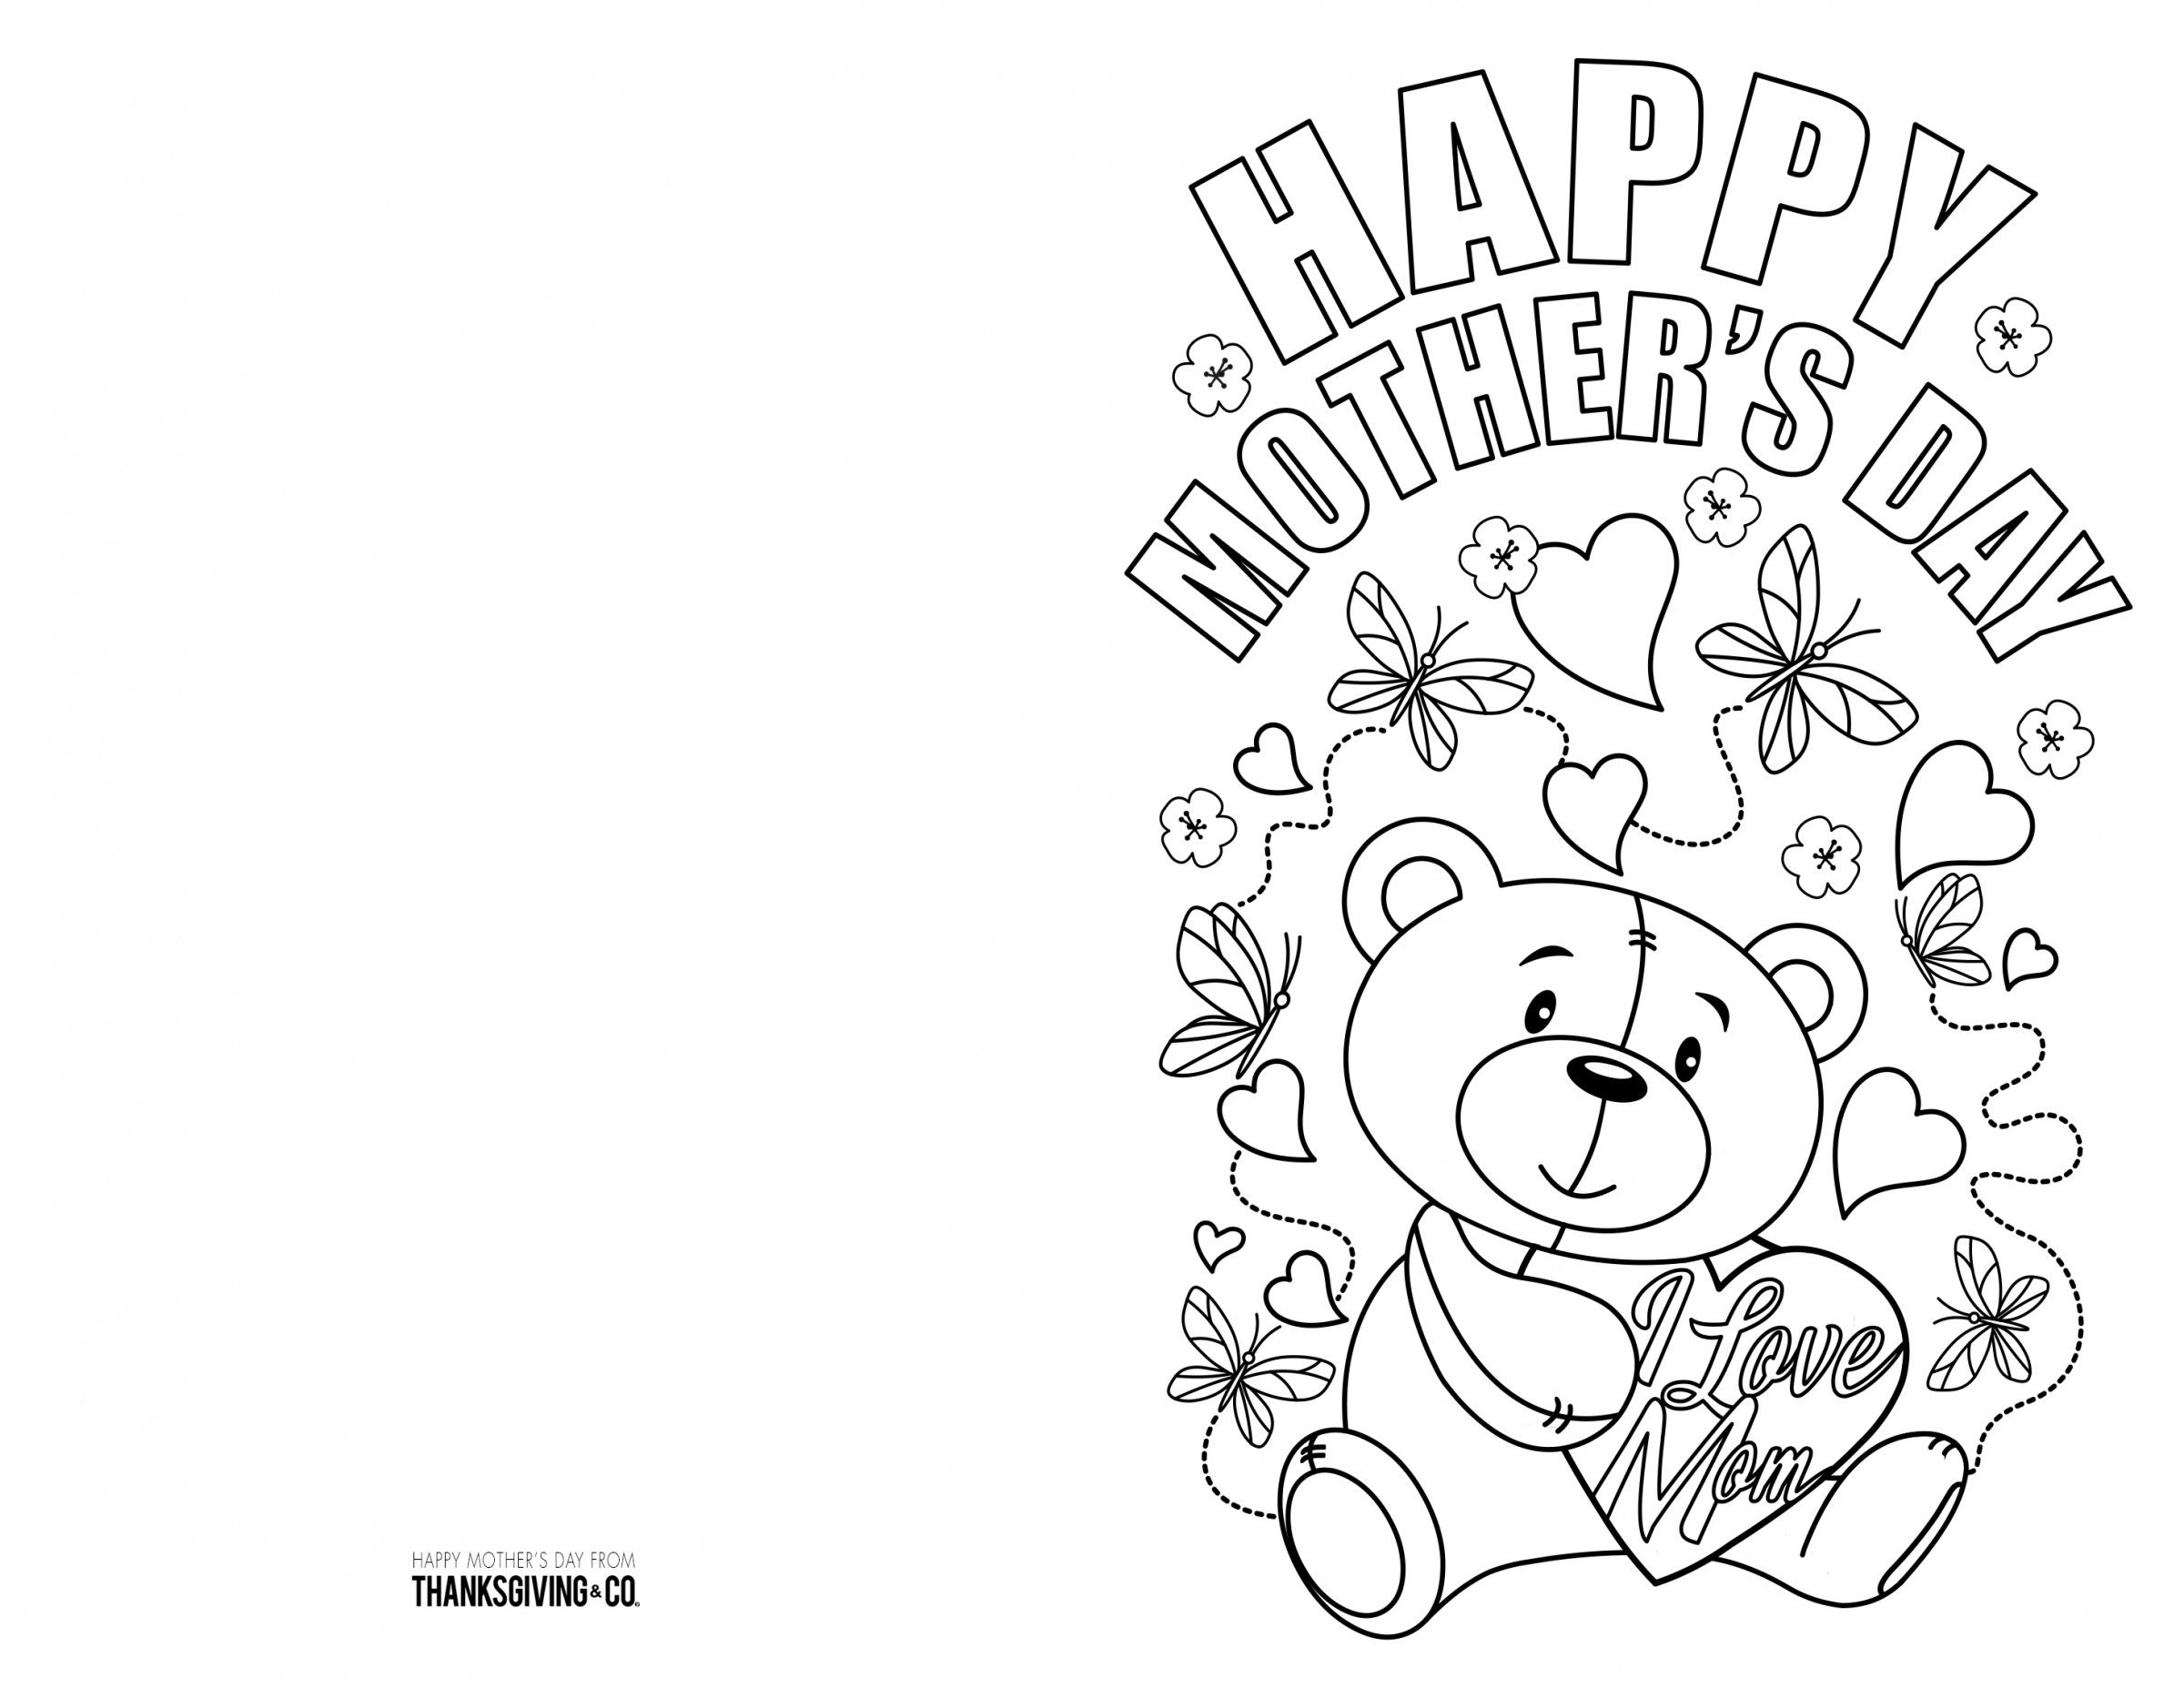 Printable Pictures To Color For Mother S Day Google Search Mothers Day Card Template Mothers Day Coloring Pages Happy Mother S Day Card